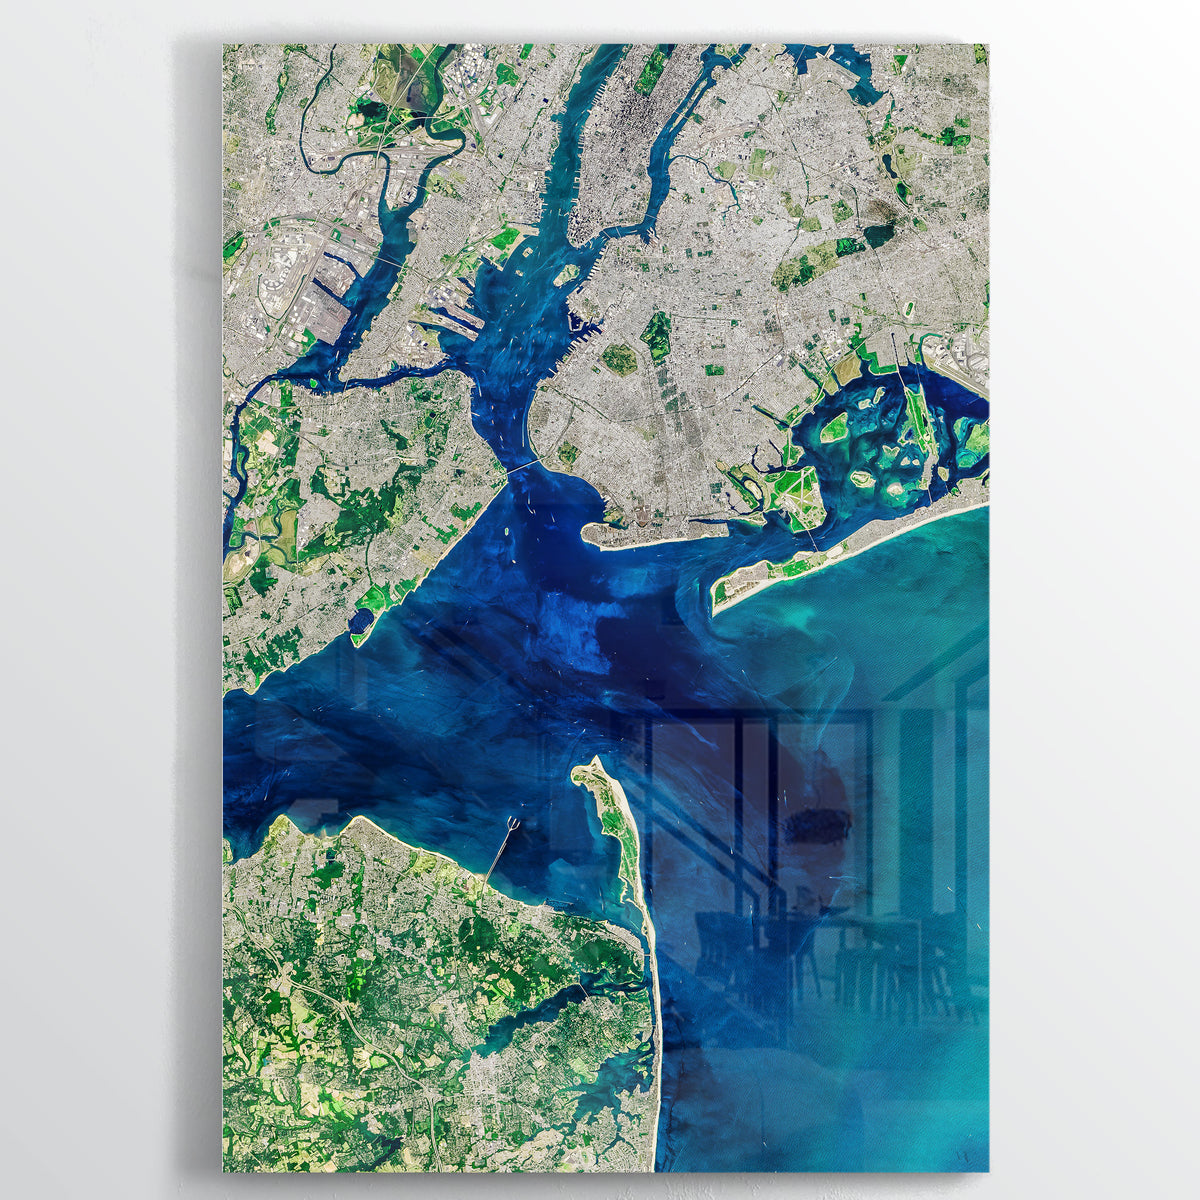 New York Bay Earth Photography - Floating Acrylic Art